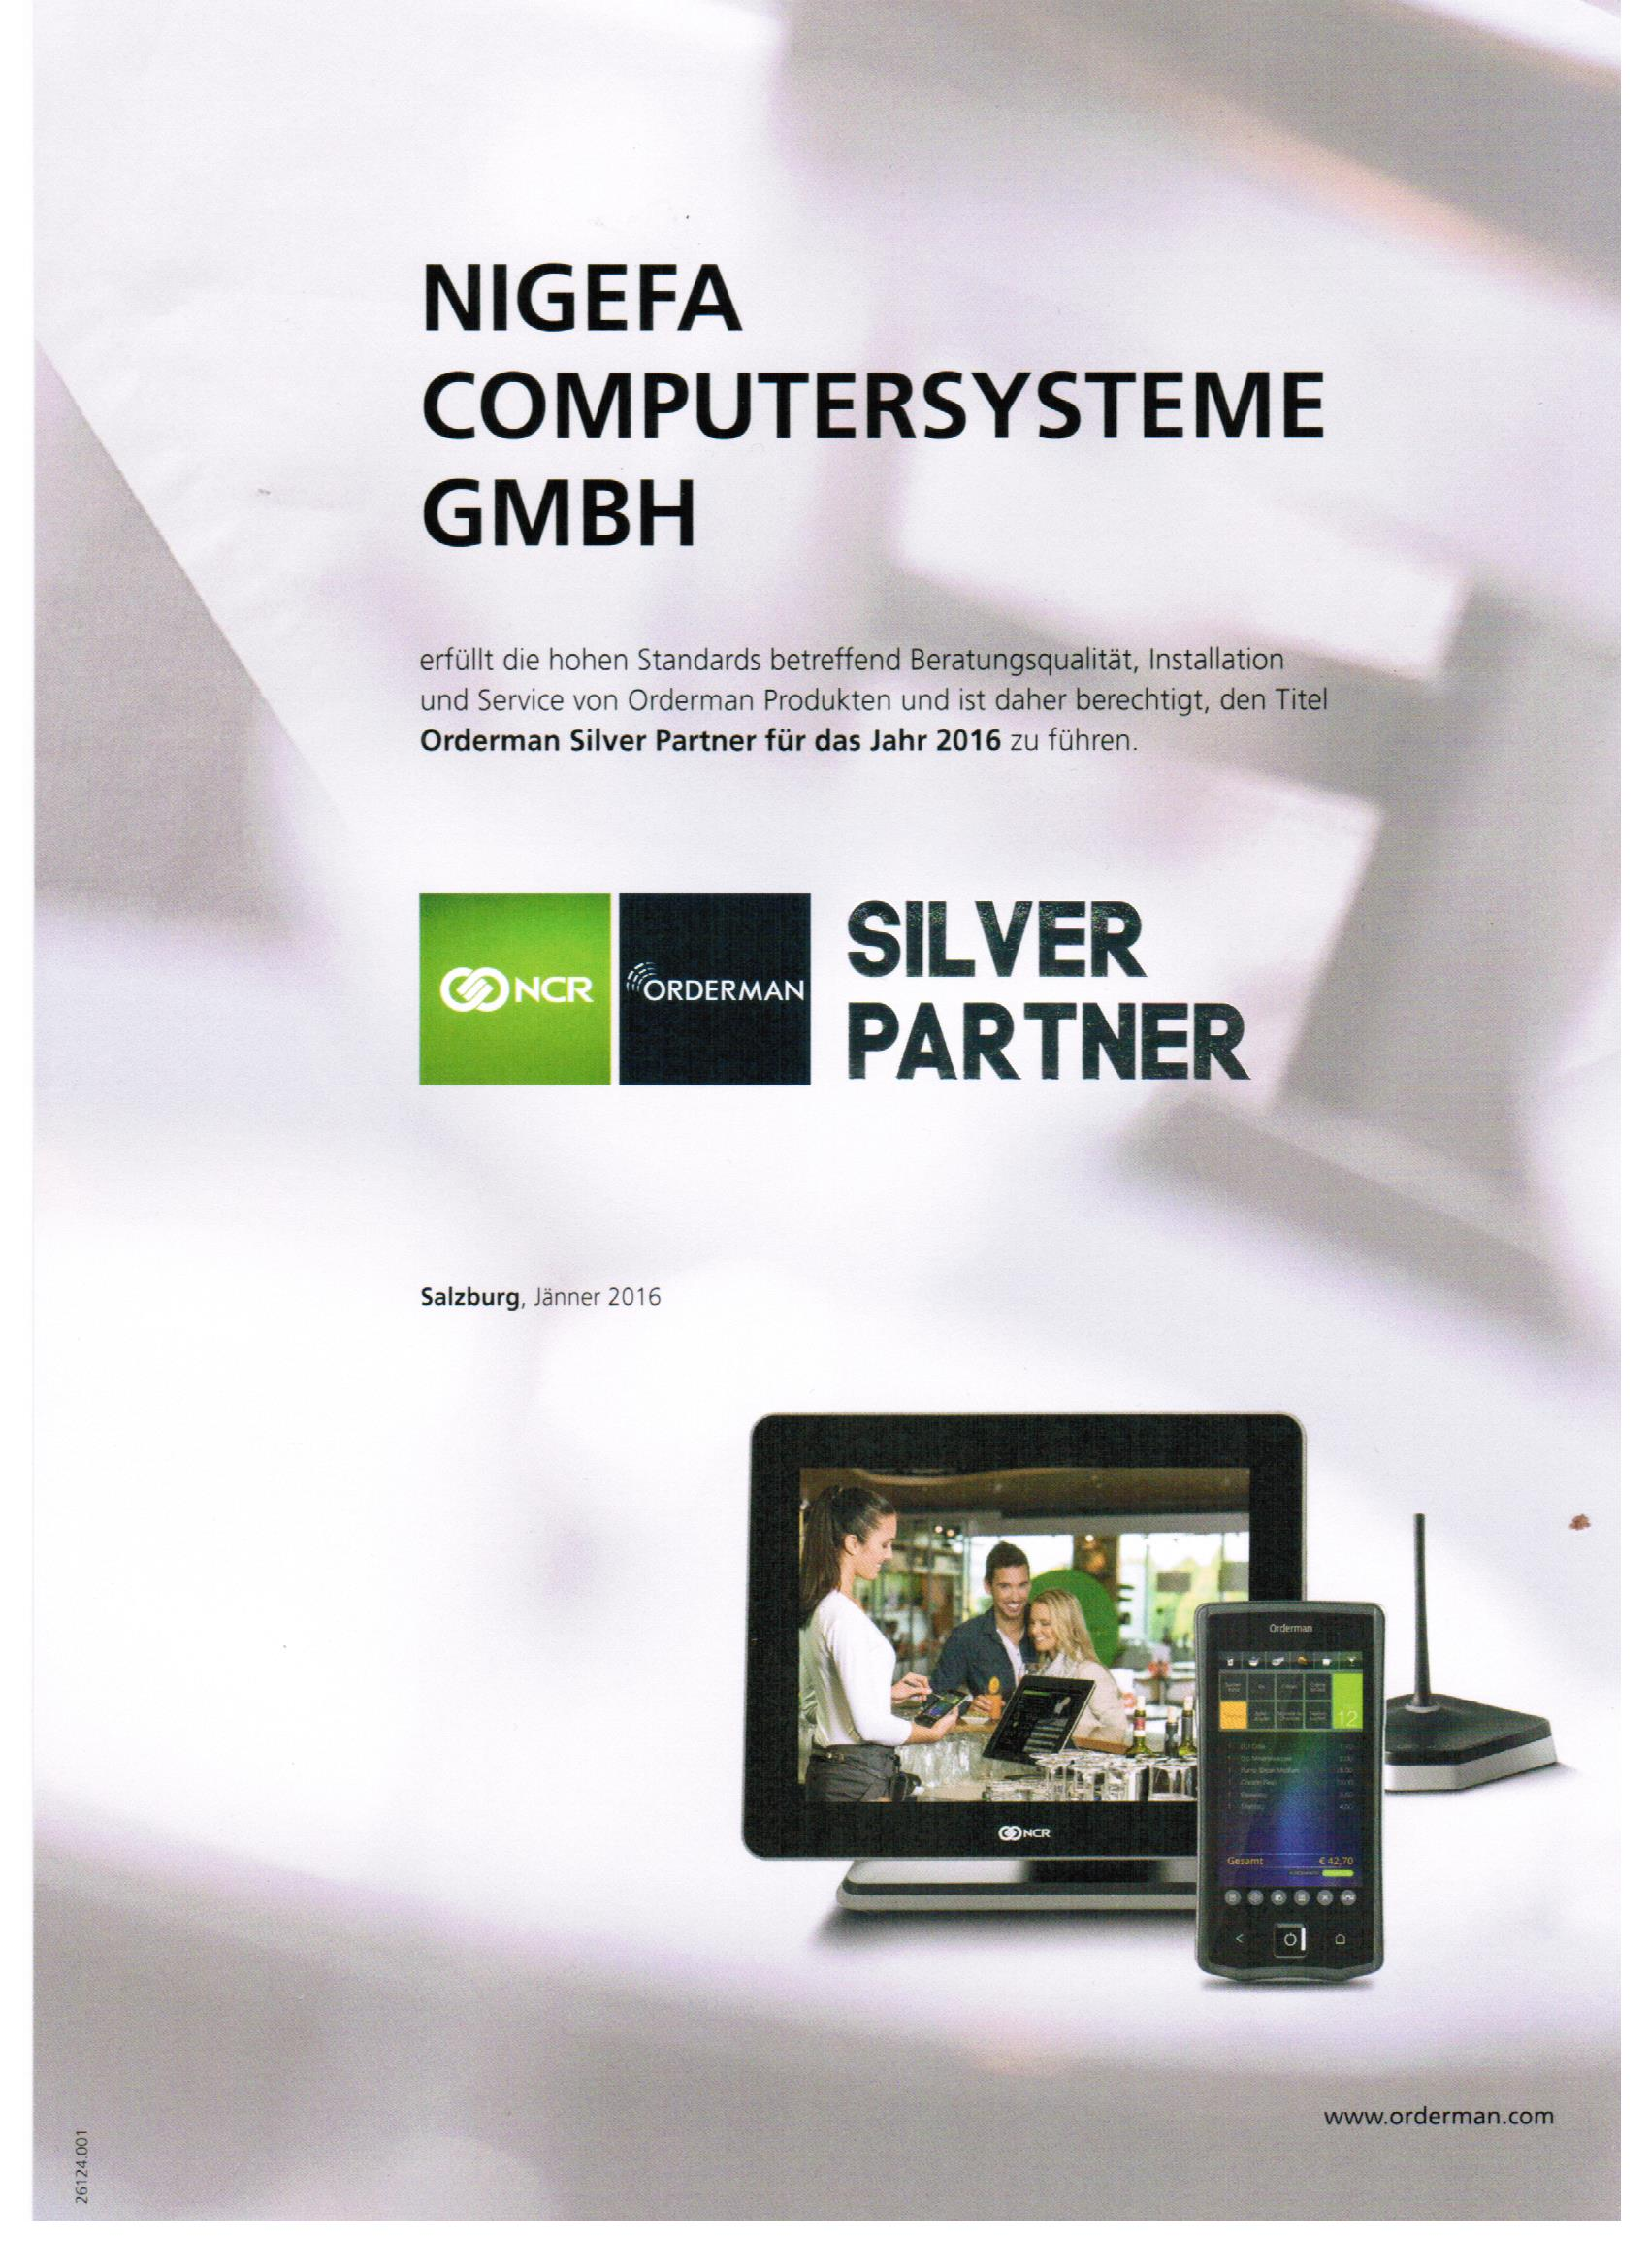 Orderman Silverpartner2016 001